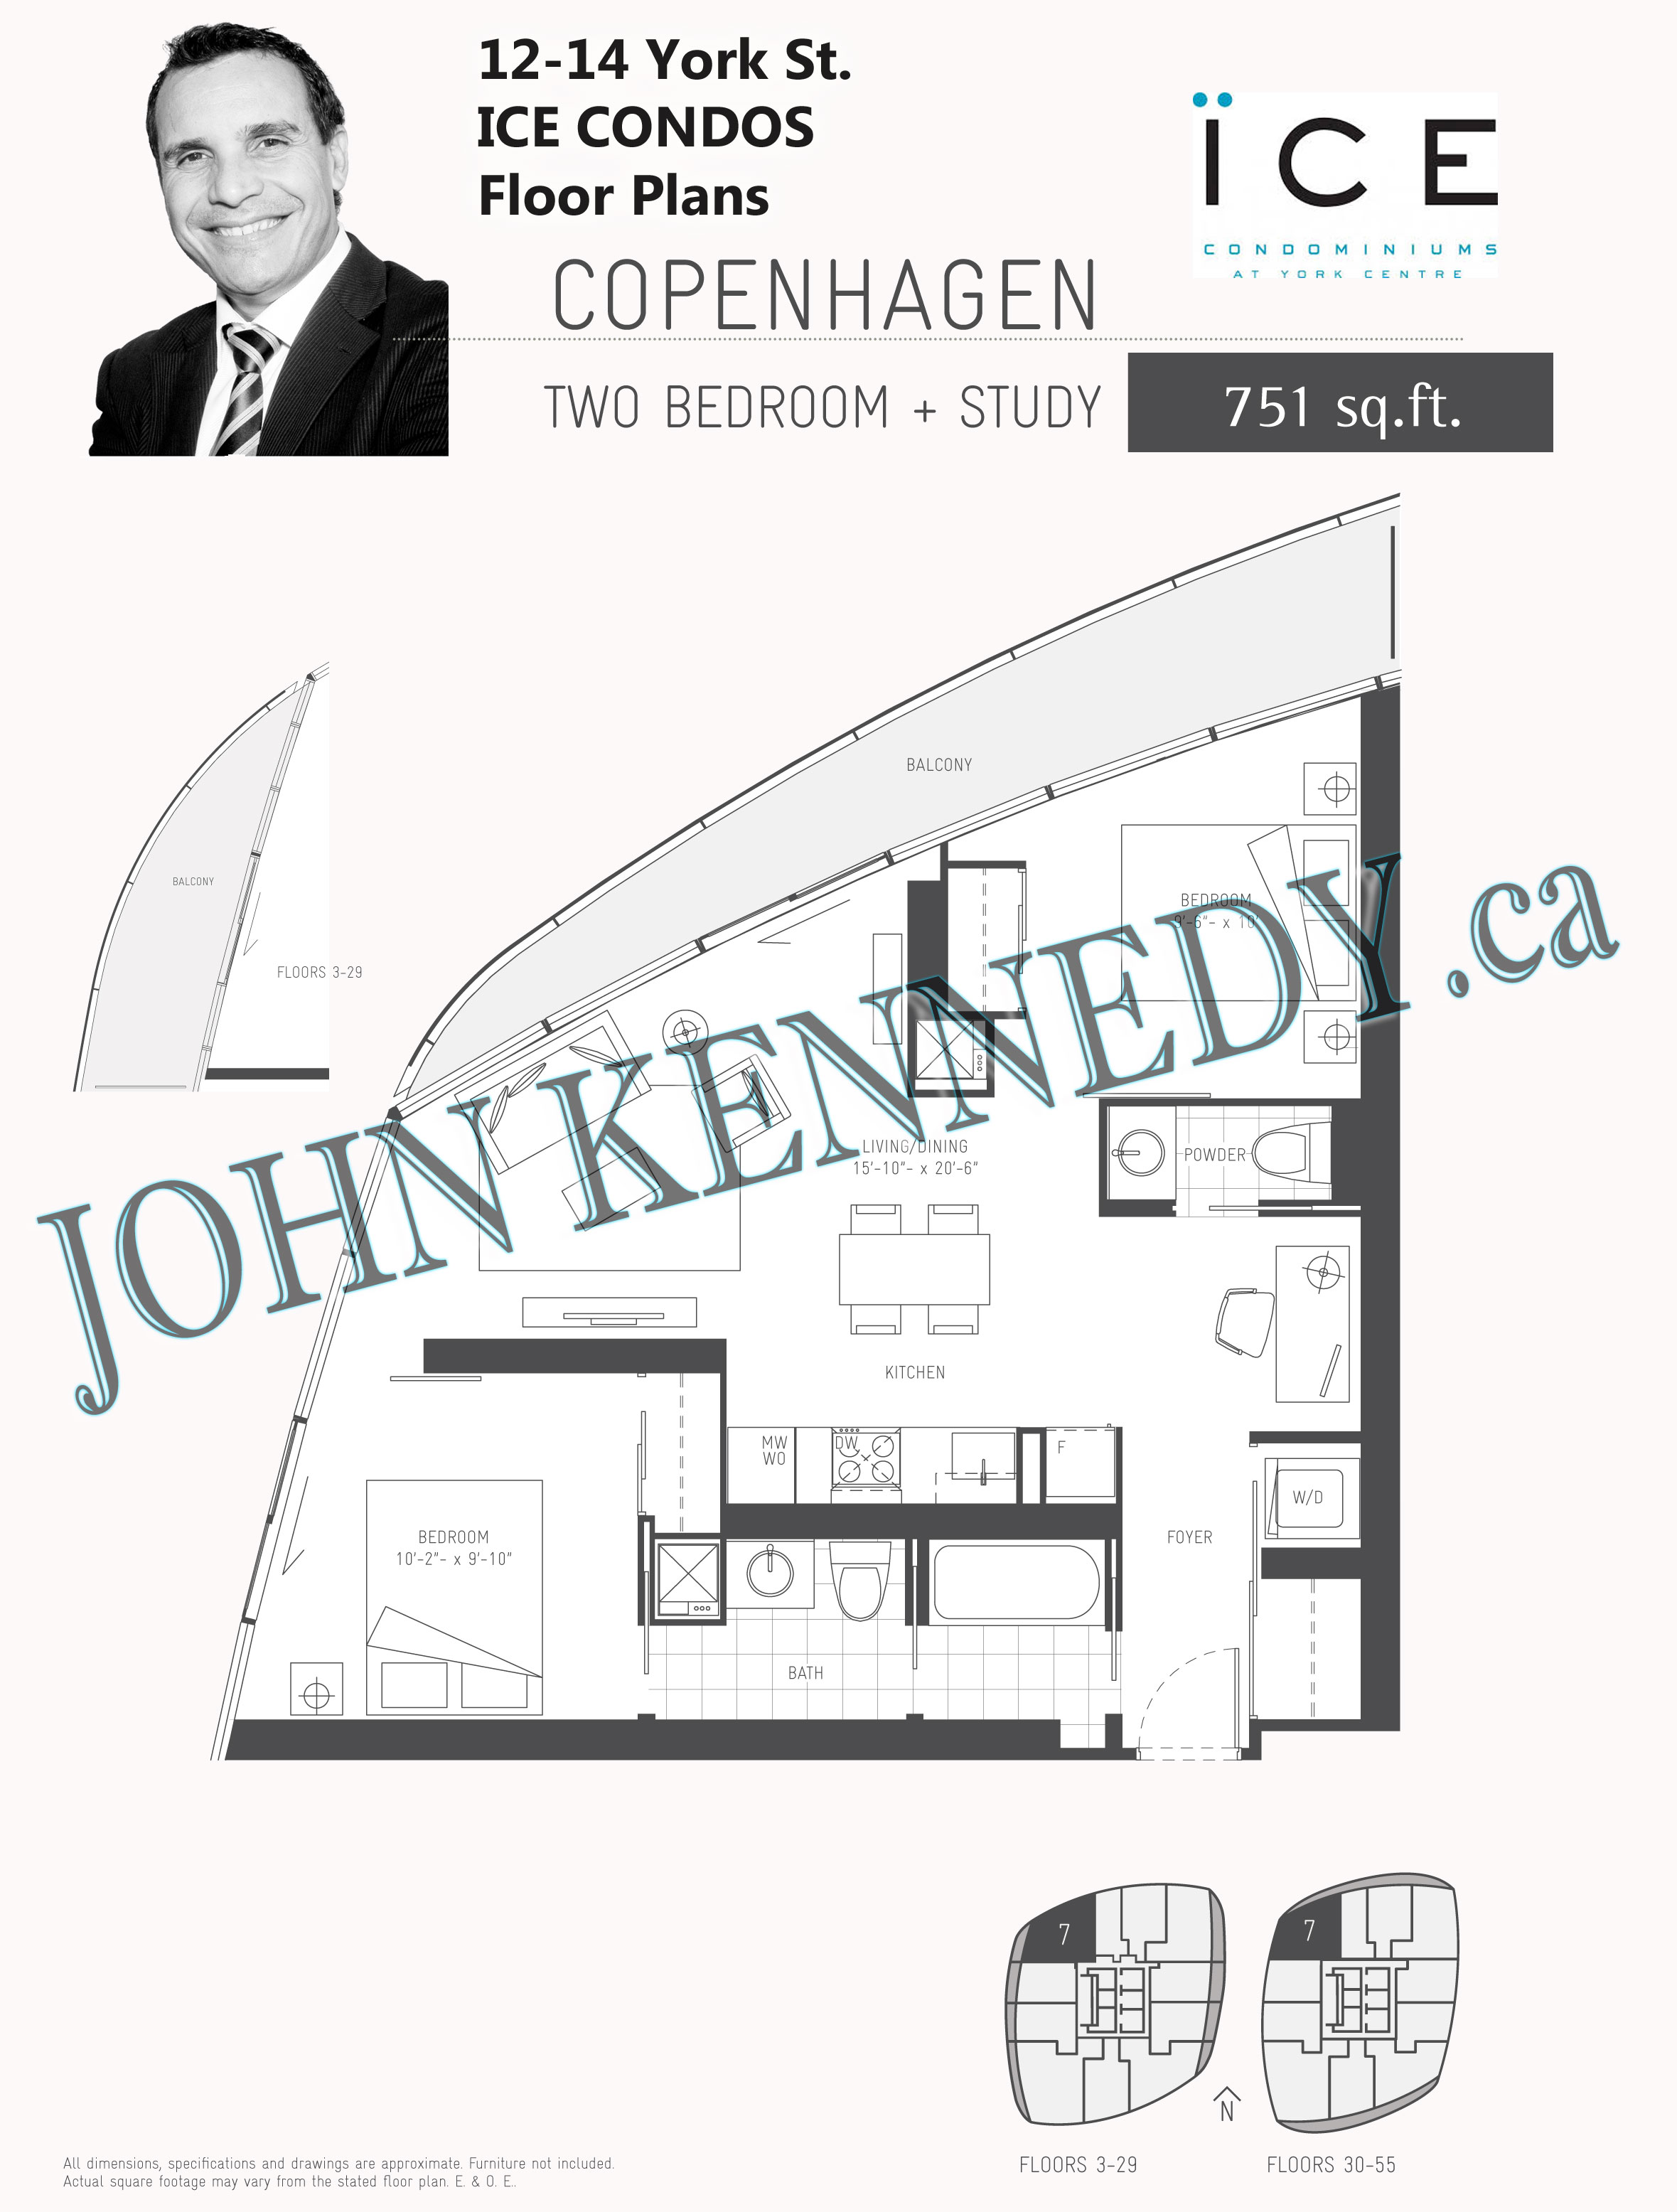 14 York St Condos for Sale and for Rent- JOHN KENNEDY